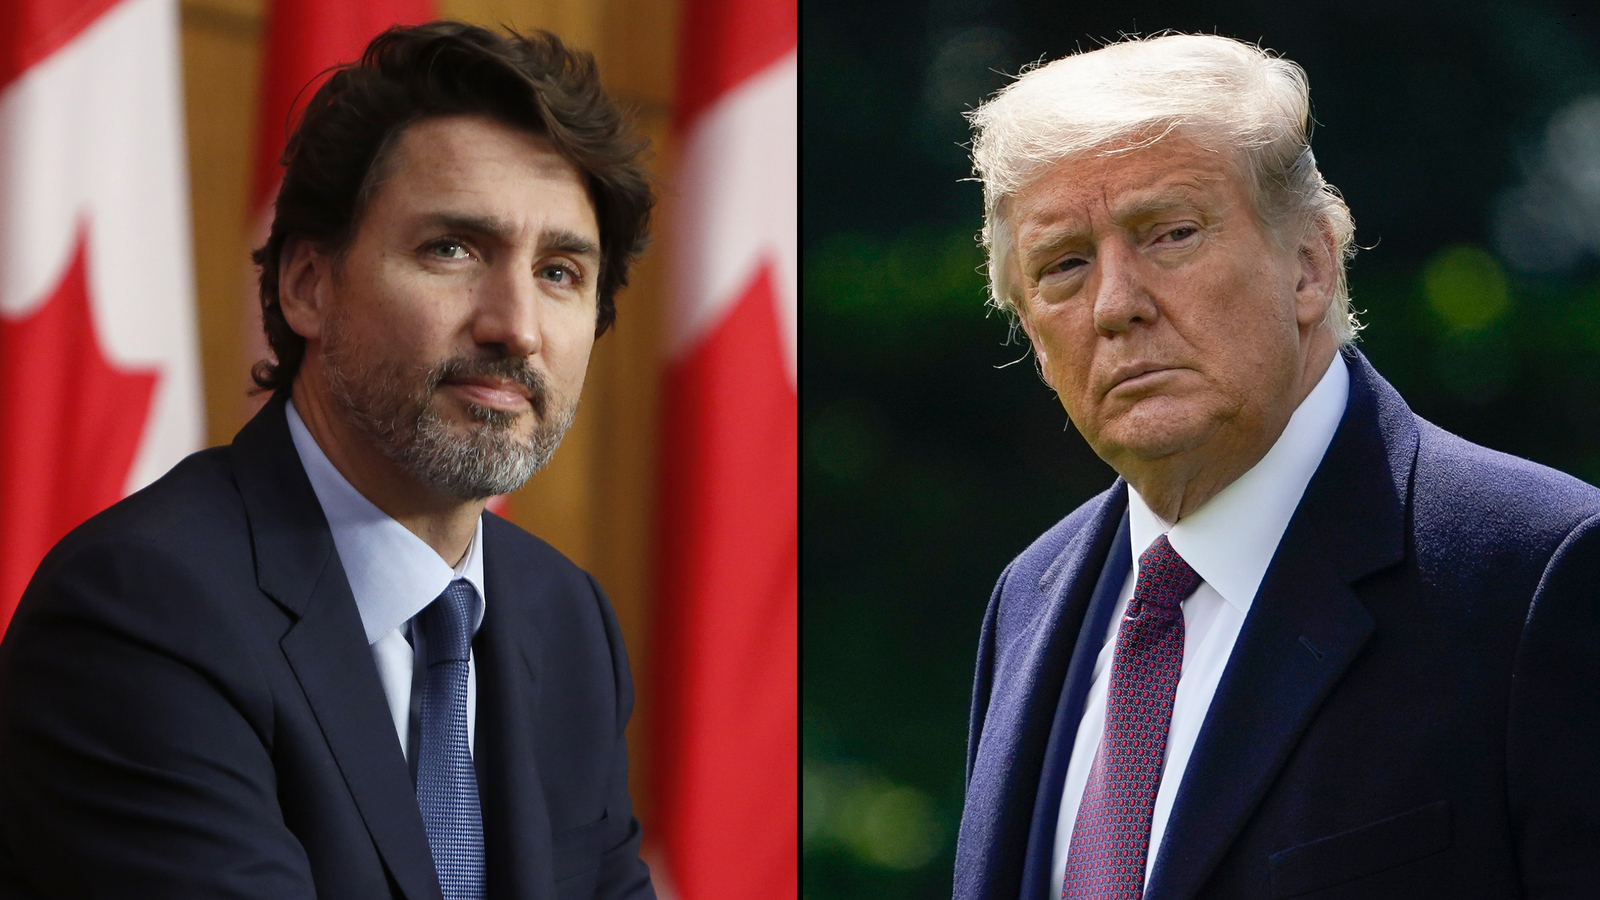 Canadian Prime Minister Justin Trudeau, left, and US President Donald Trump.